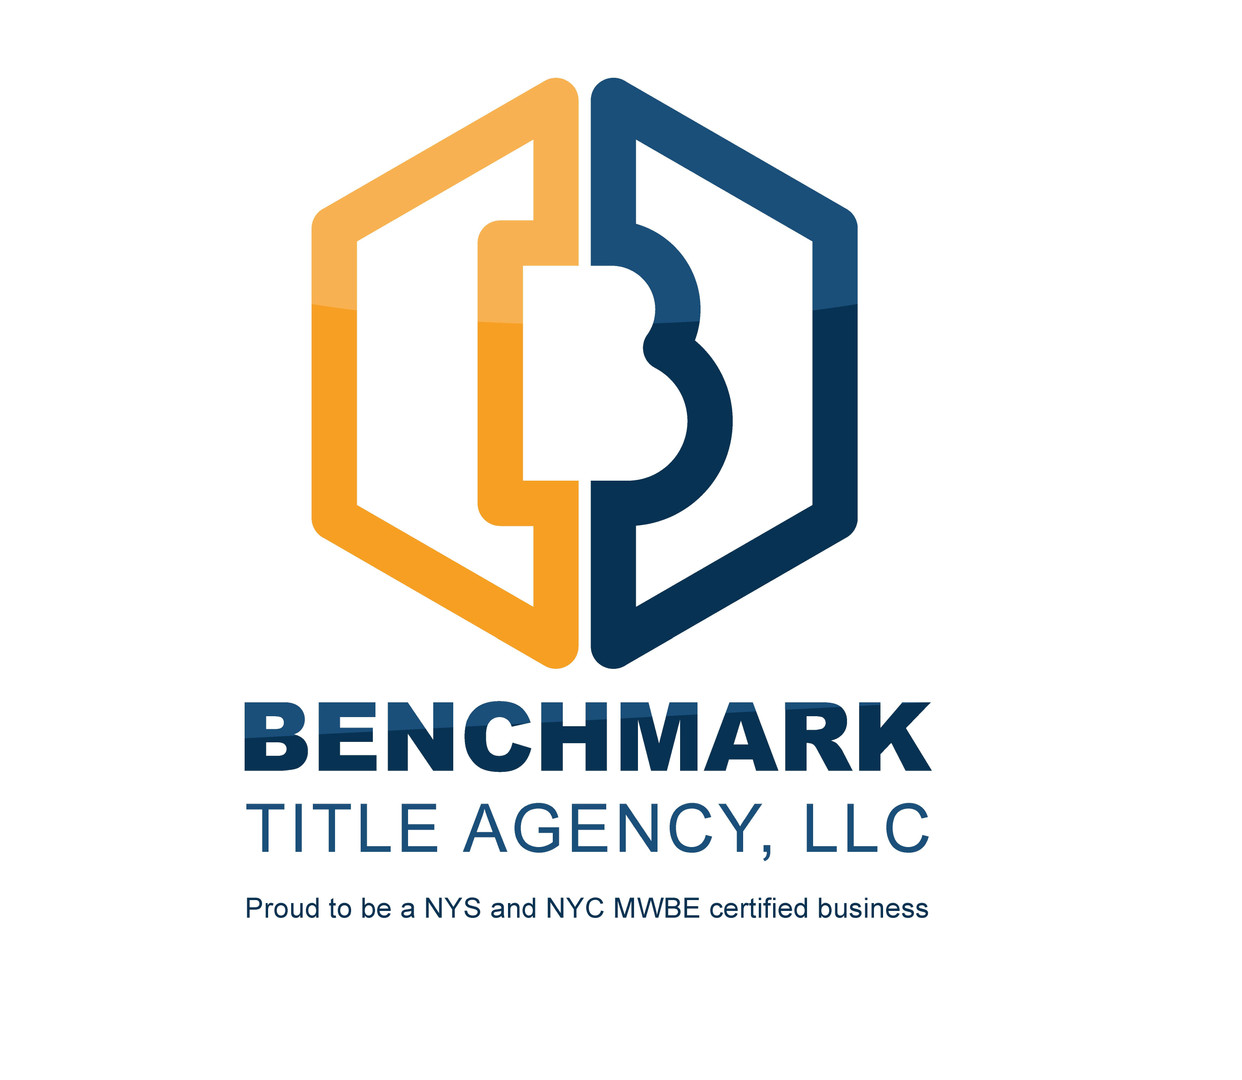 Benchmark Title Agency